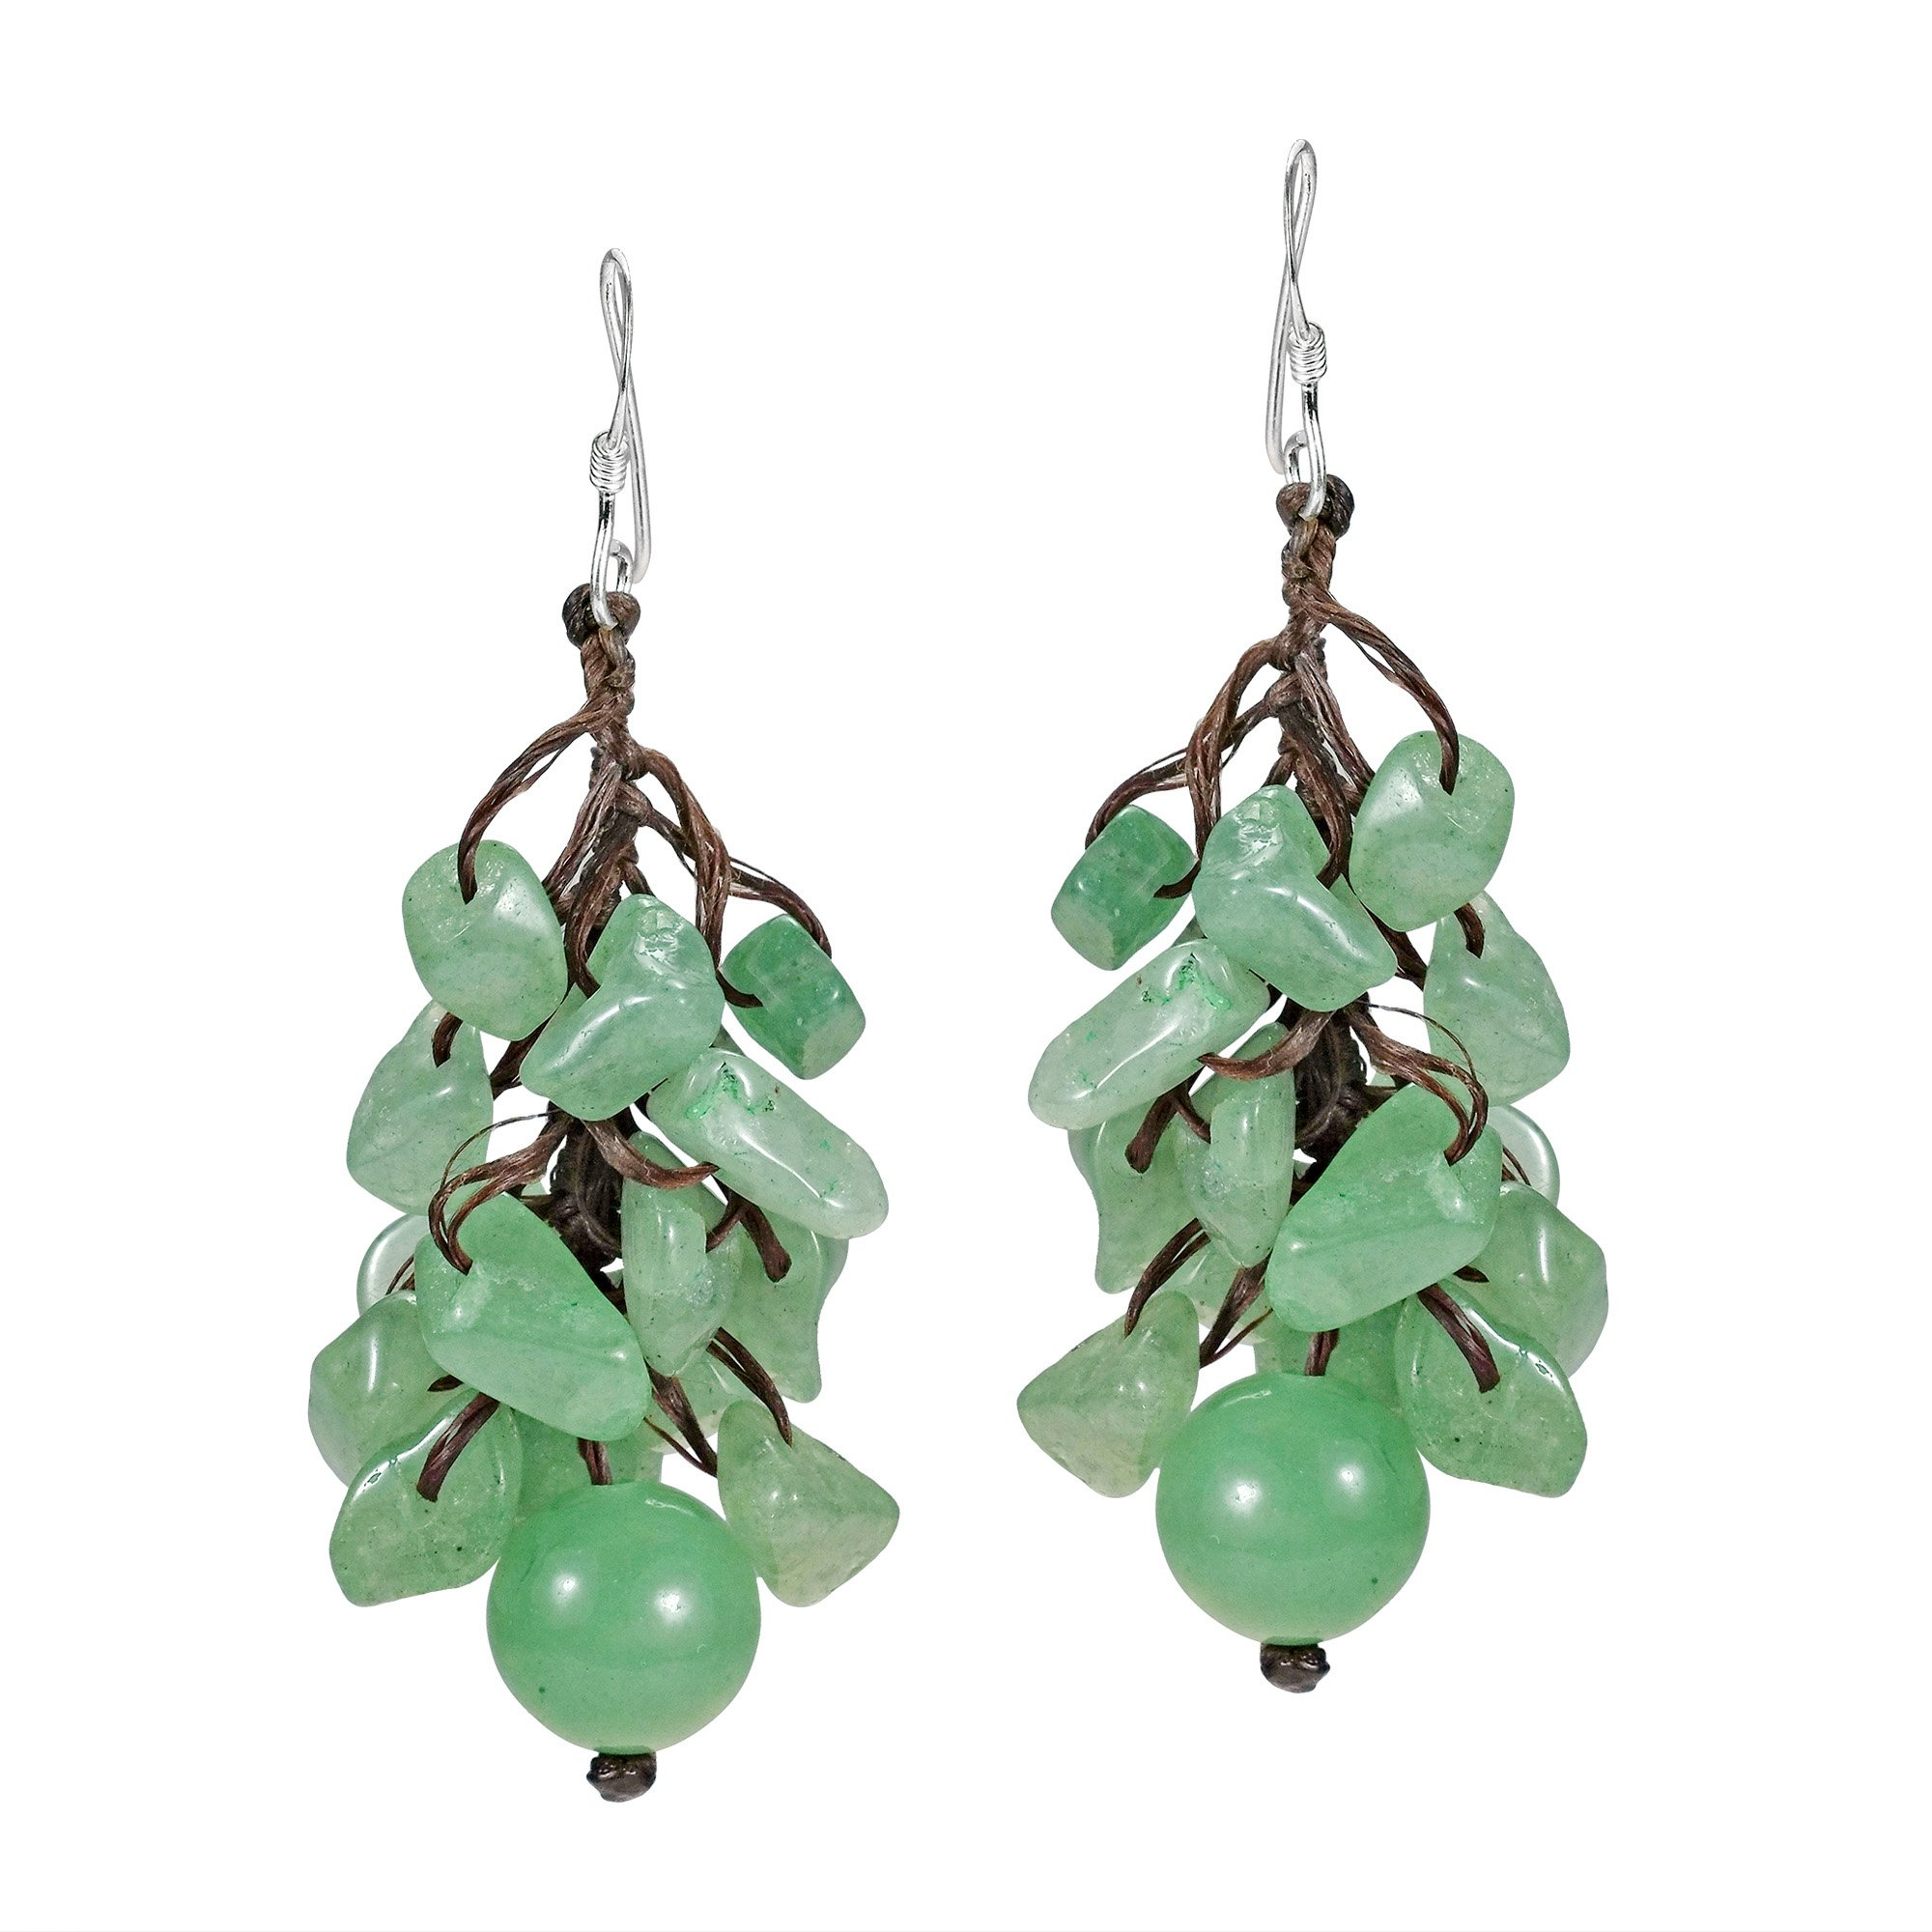 Dangle Cluster Ball Simulated Aventurine Sterling Silver Earrings by AeraVida (Image #1)